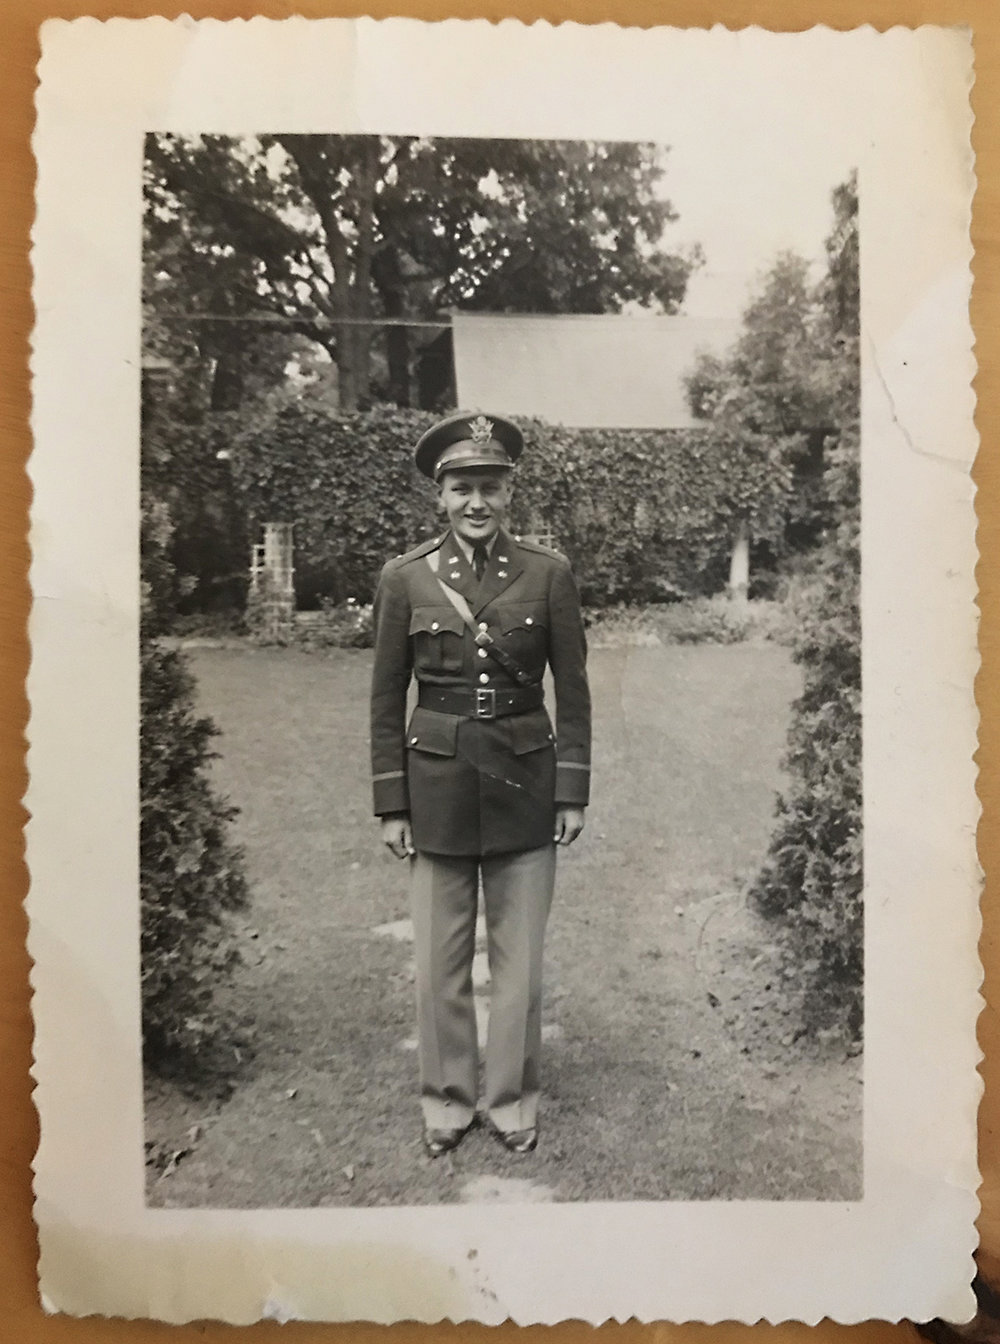 A very young Robert Gruhn at the start of his military career.